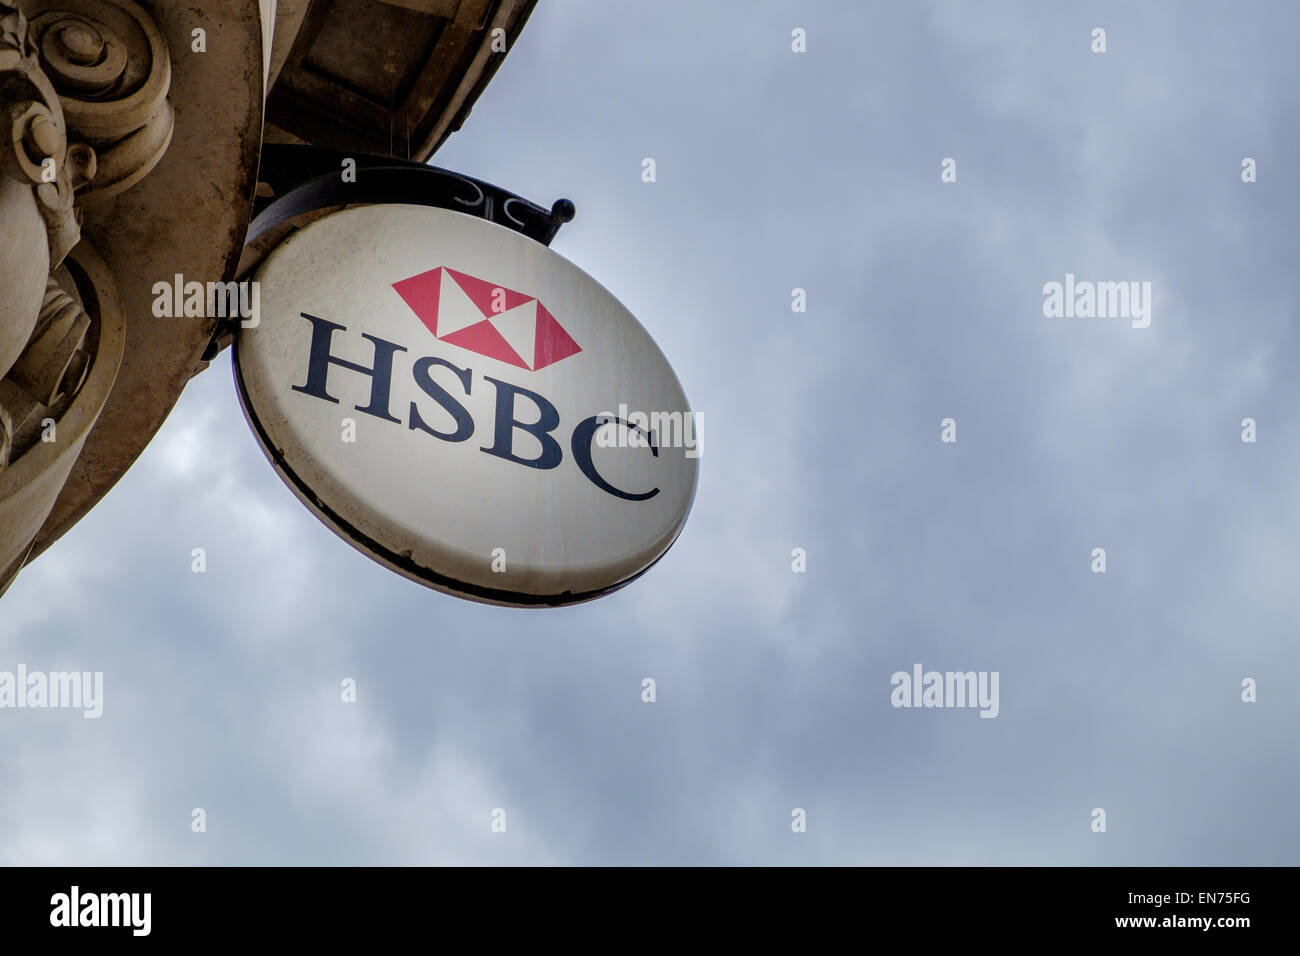 A HSBC sign above the Cirencester main branch of the bank, shot against a gloomy, cloudy sky economy forecast concept - Stock Image